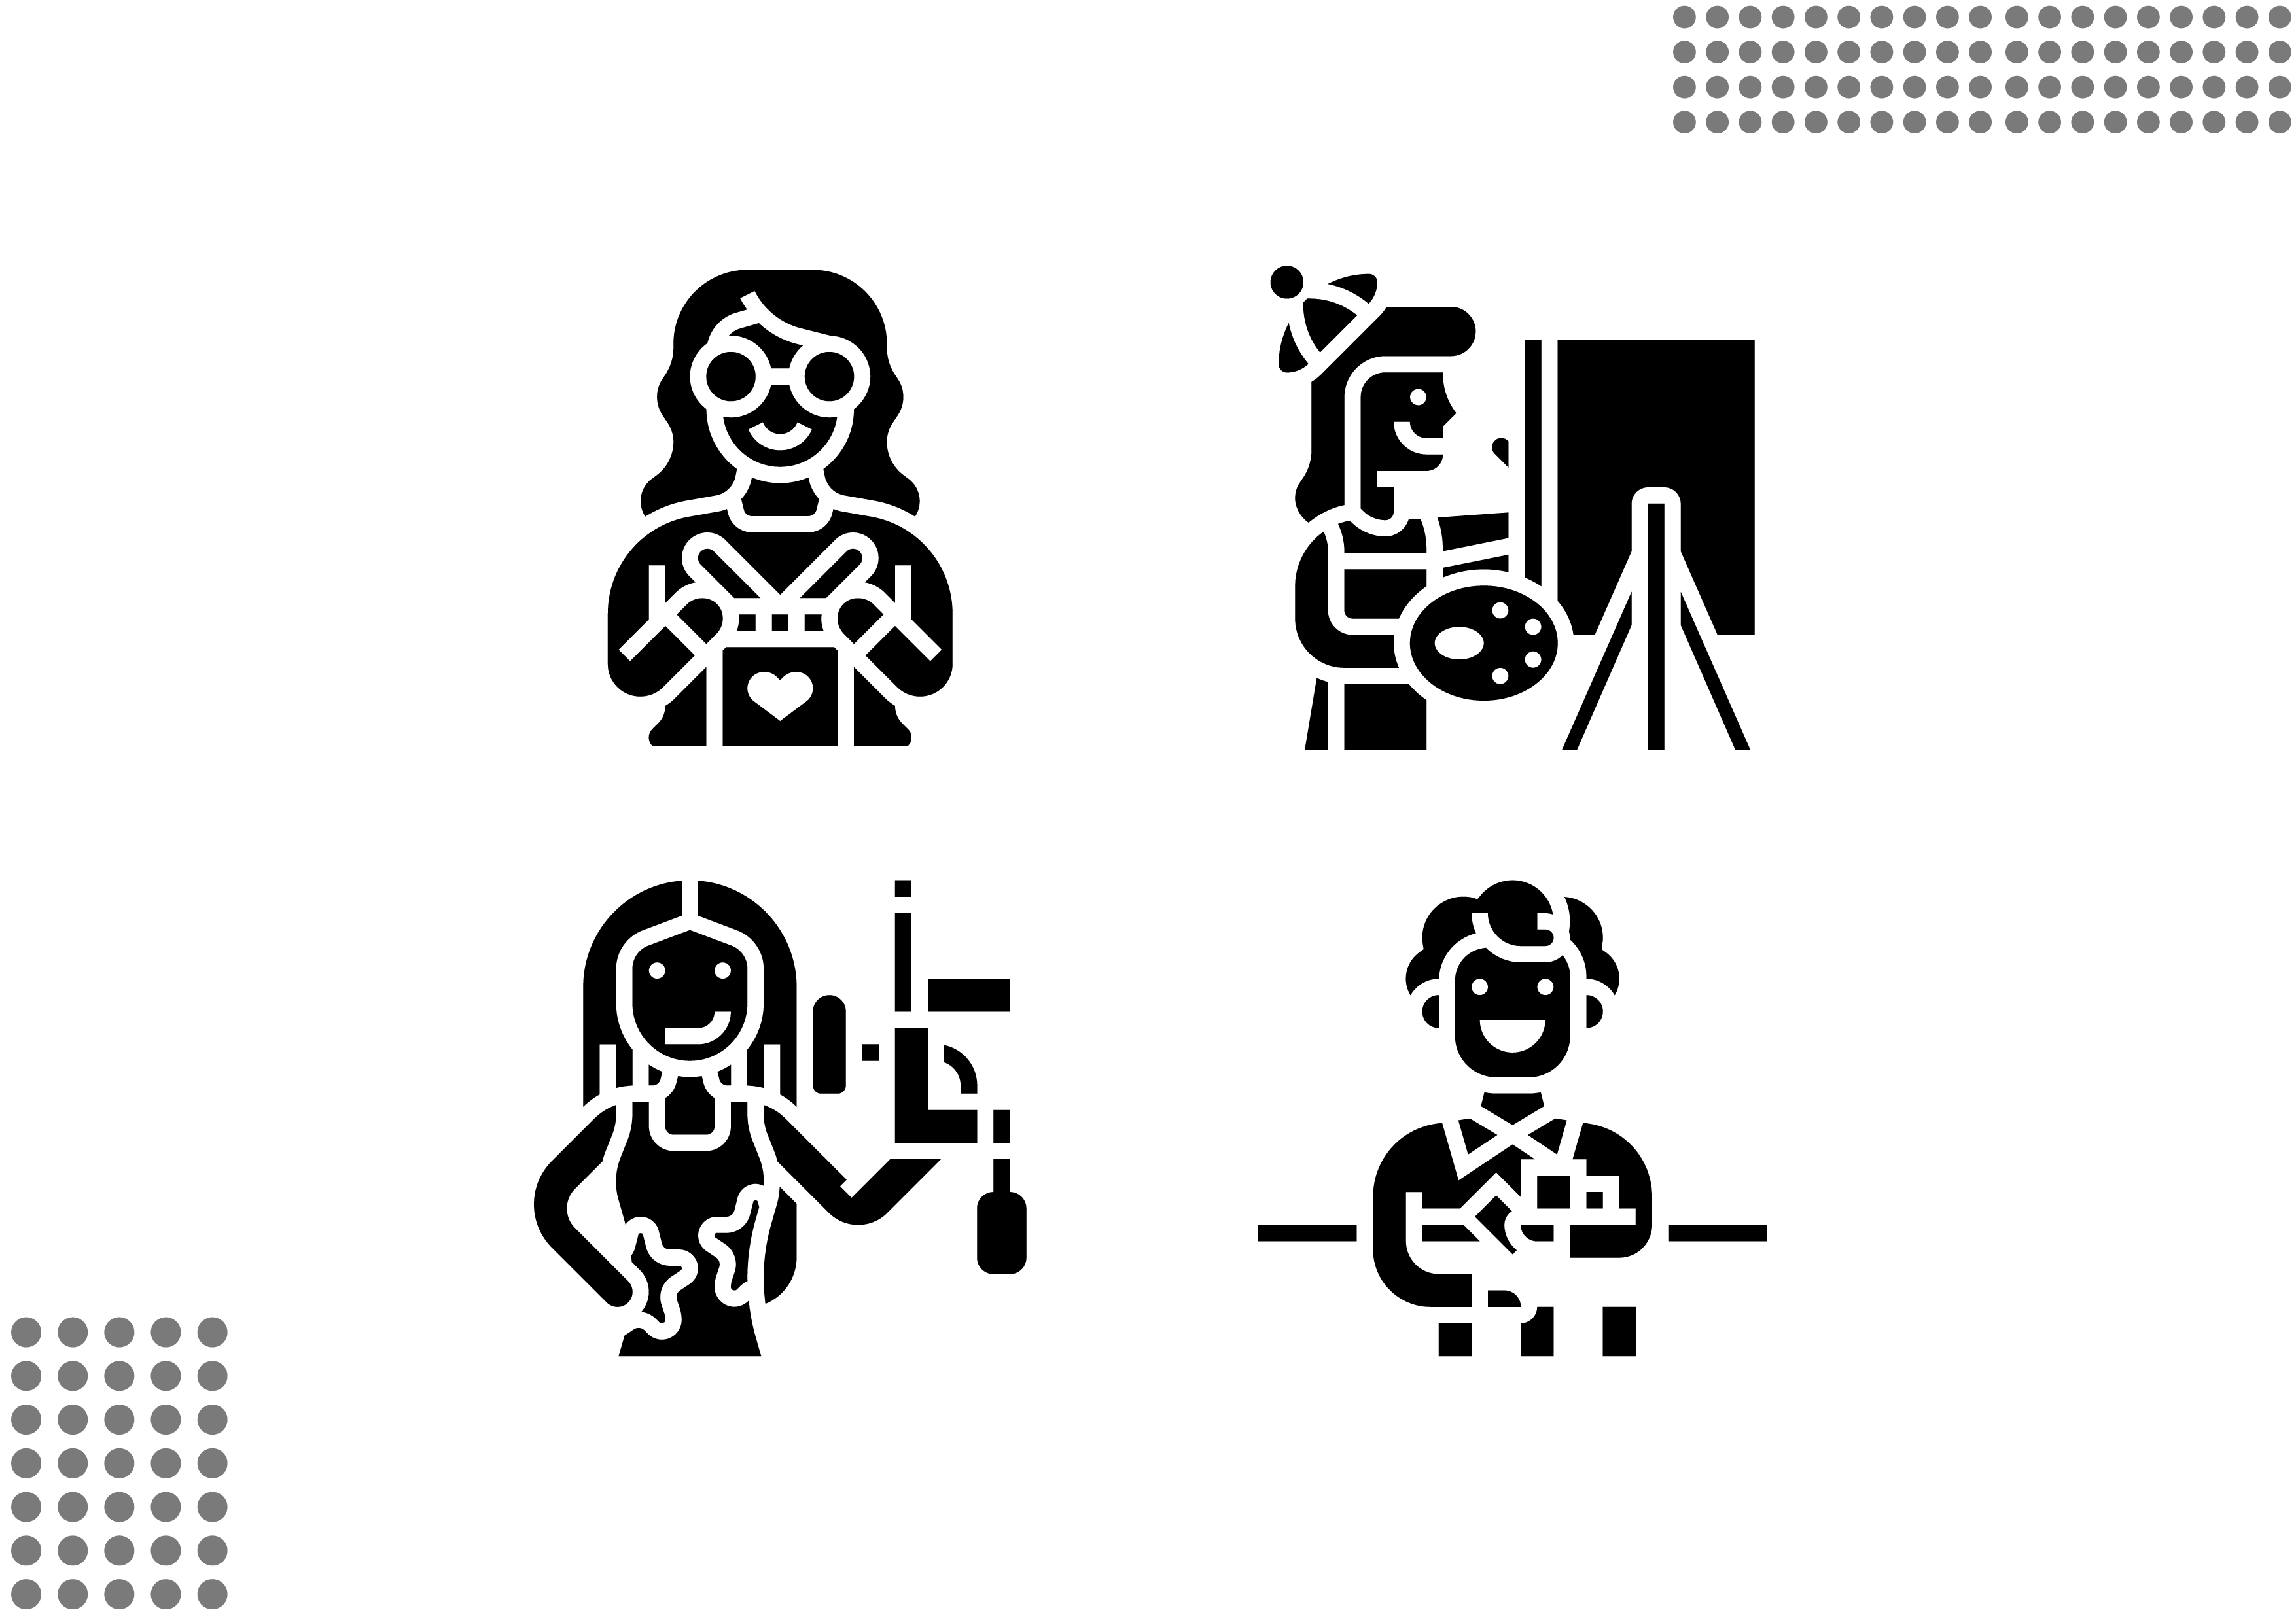 Hobbies Men Objects Sport Tourism Coding Grayscale Stock Vector -  Illustration of tourism, white: 139381885